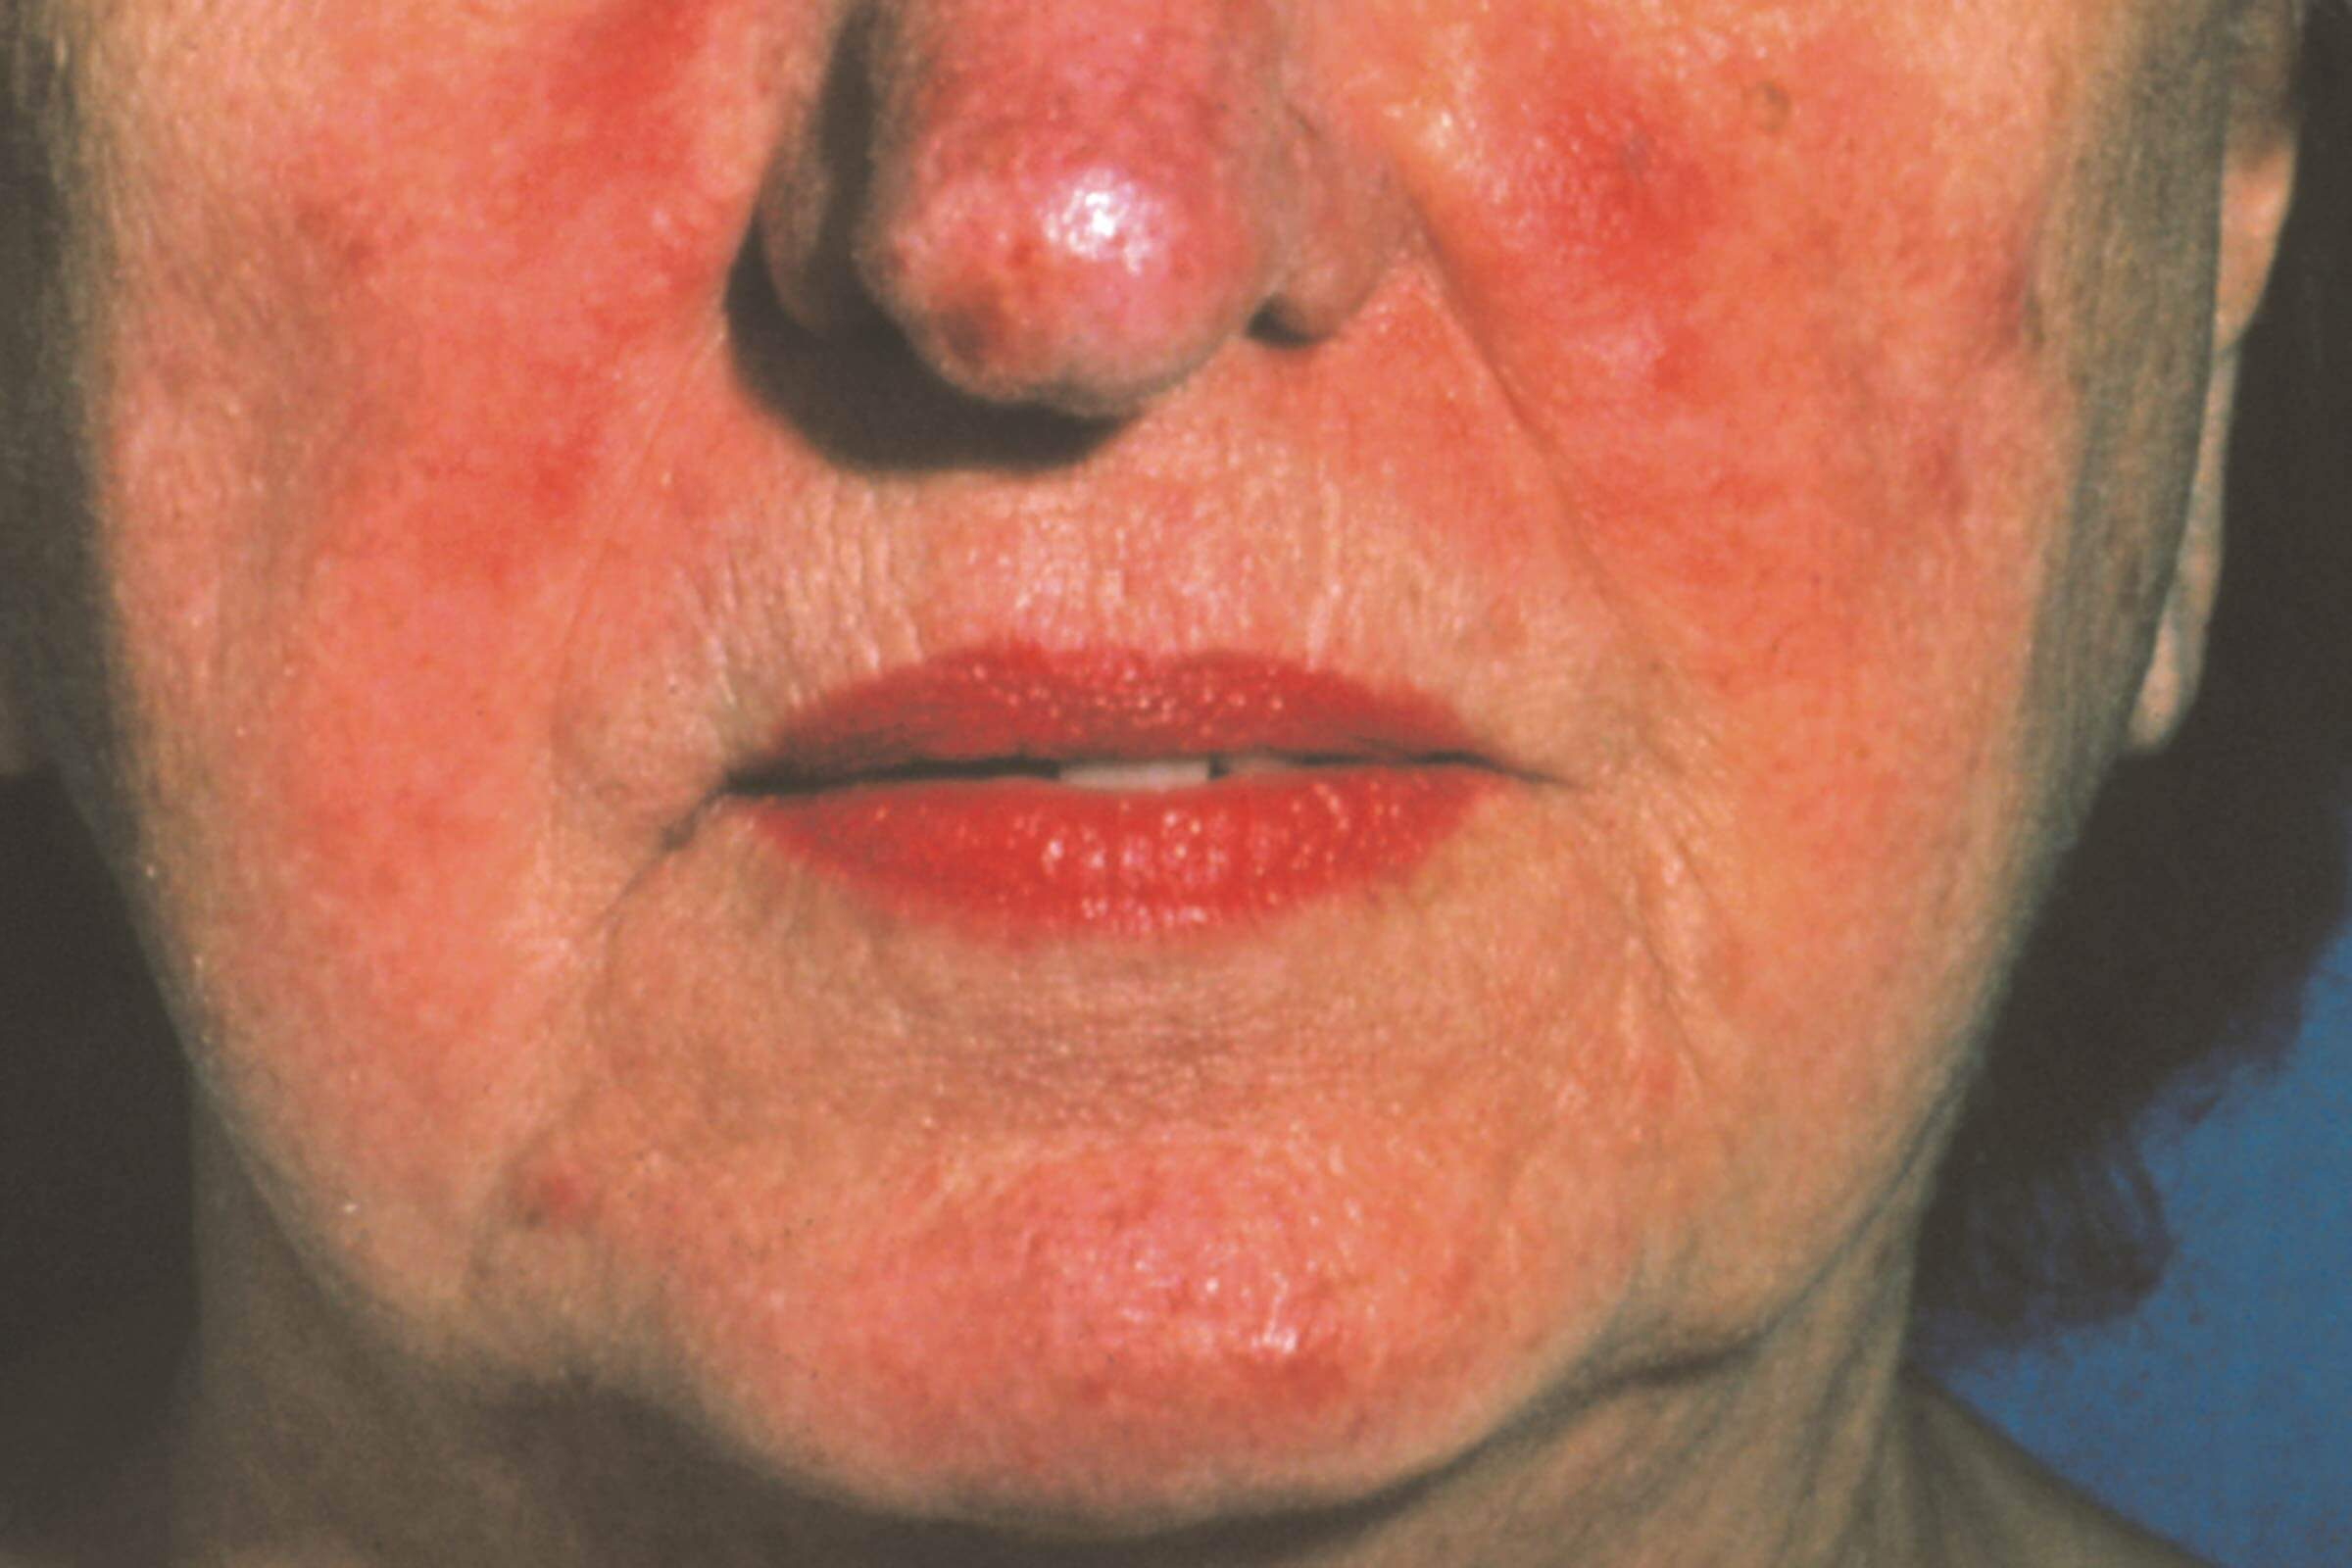 The Best Skin Care Routine for Rosacea | Reader's Digest